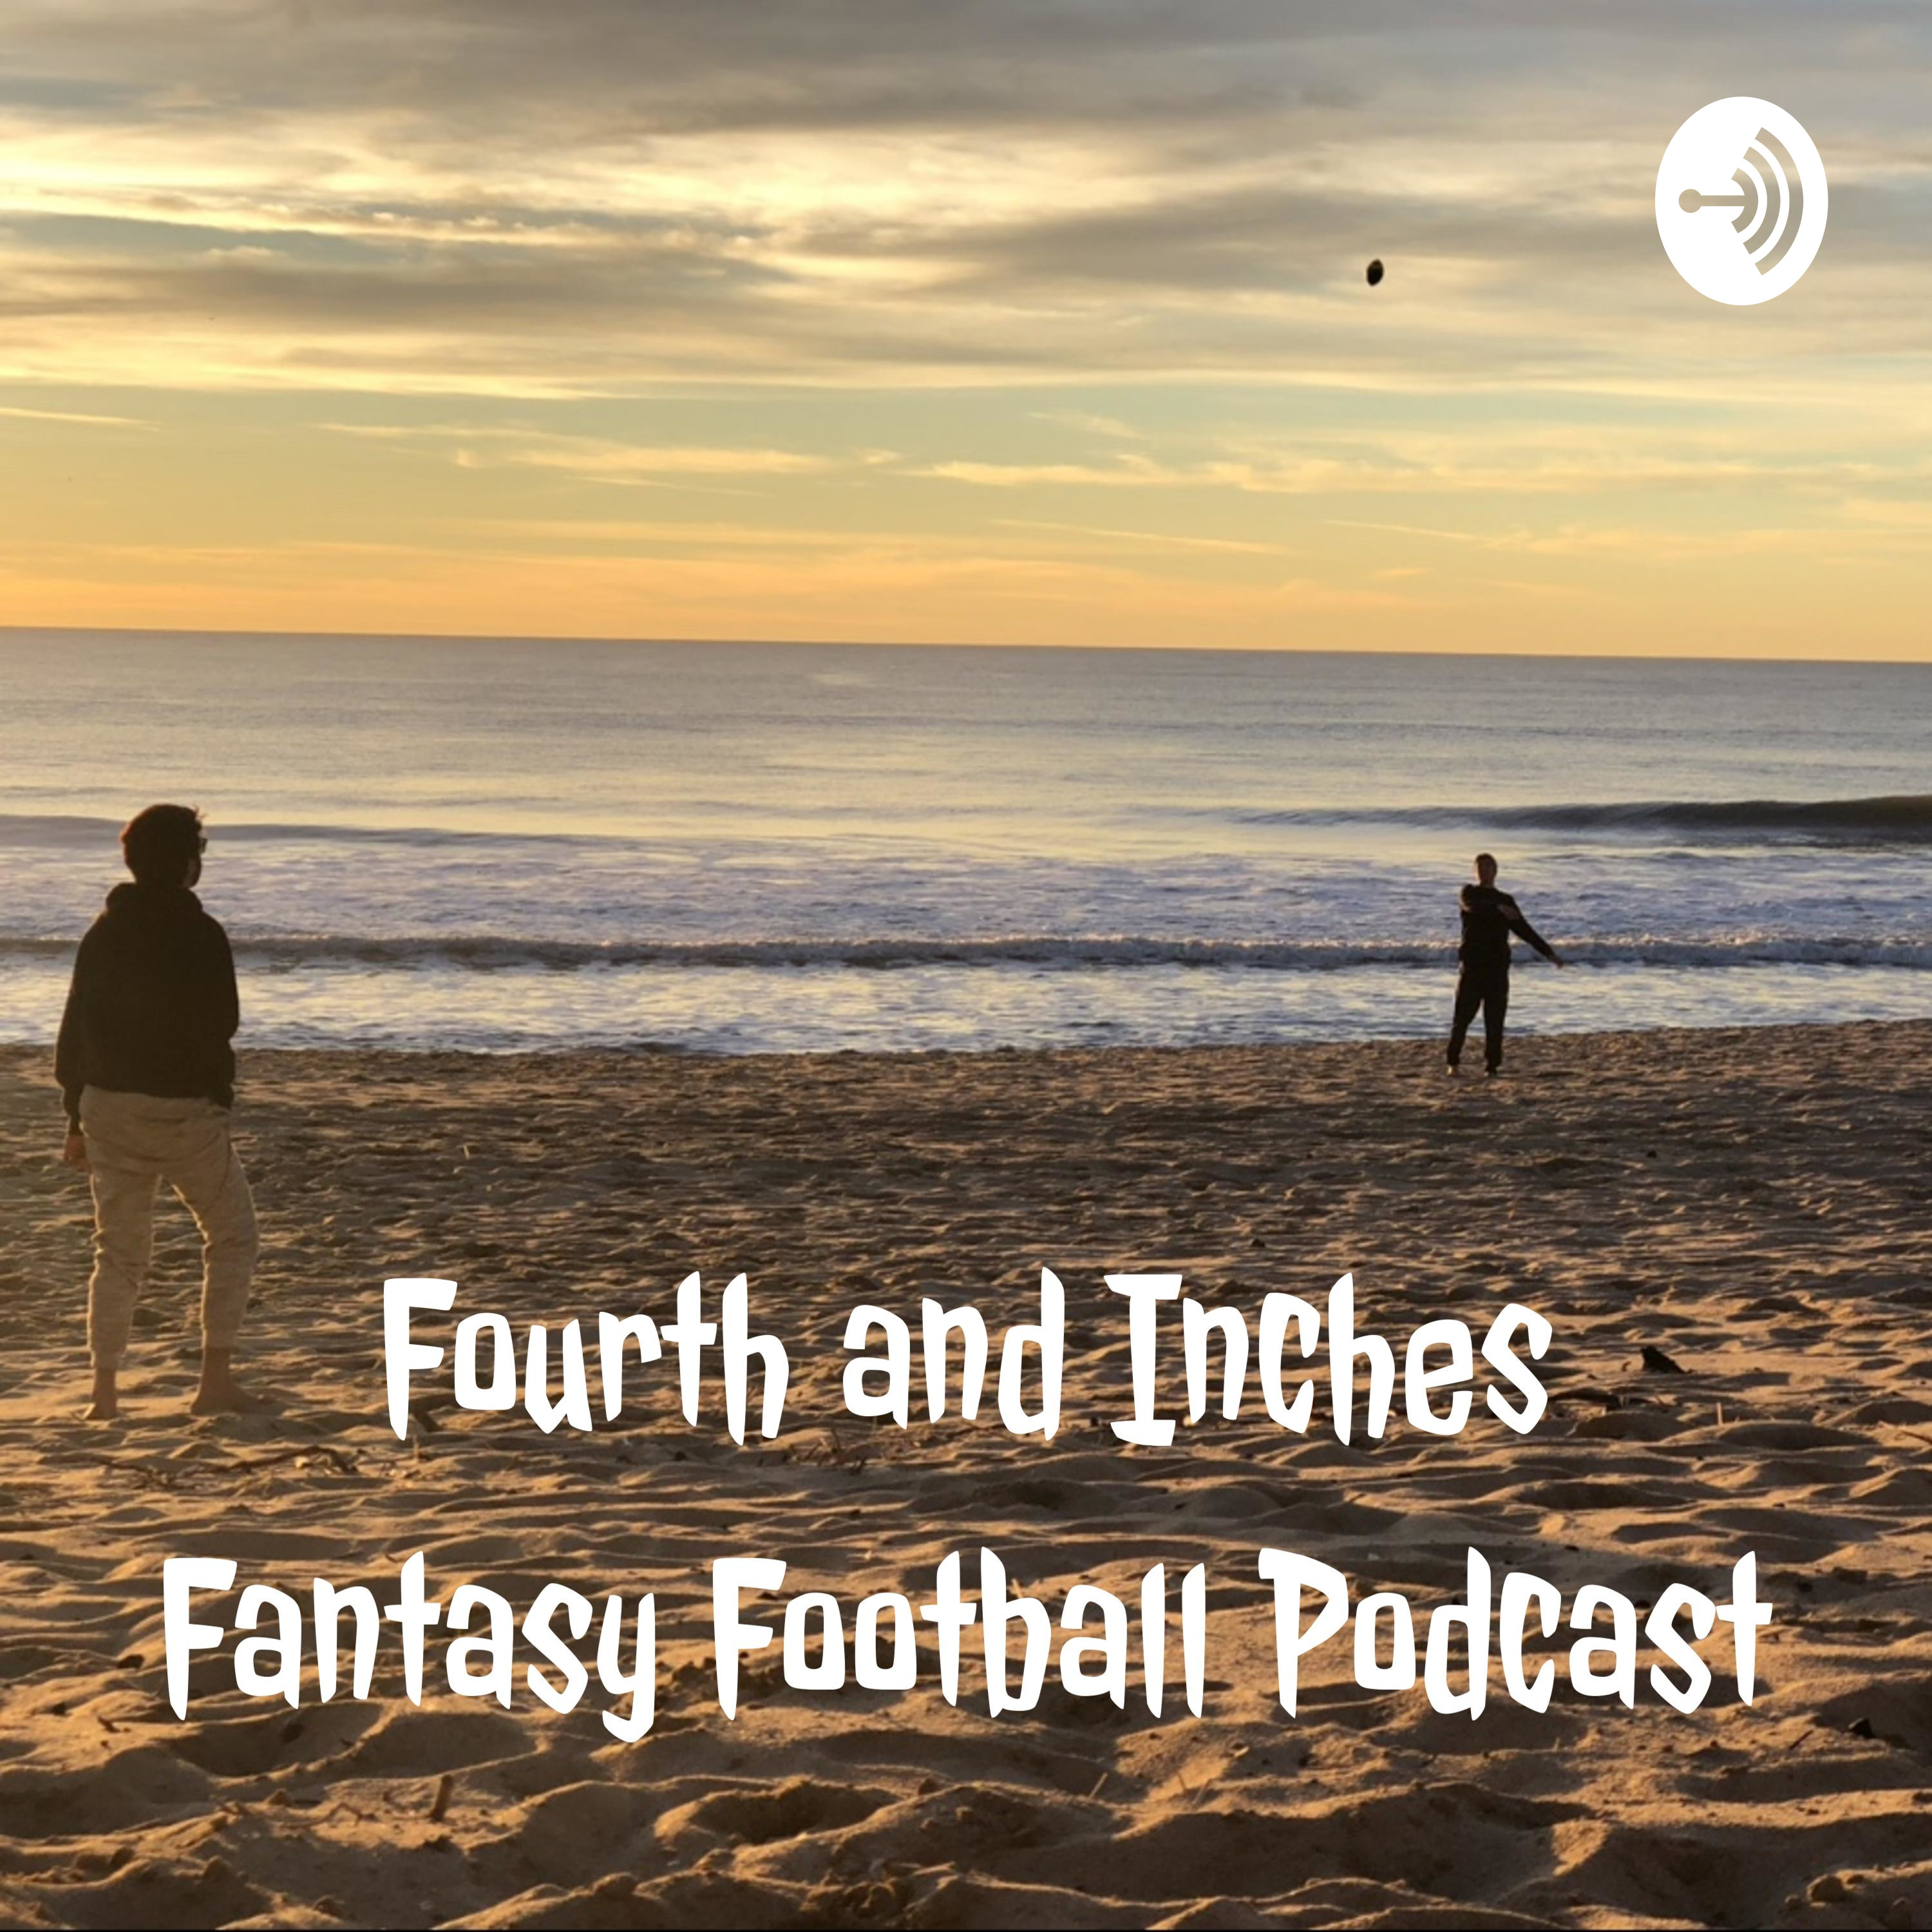 Fourth and Inches - Episode 2 - Young guns are here!